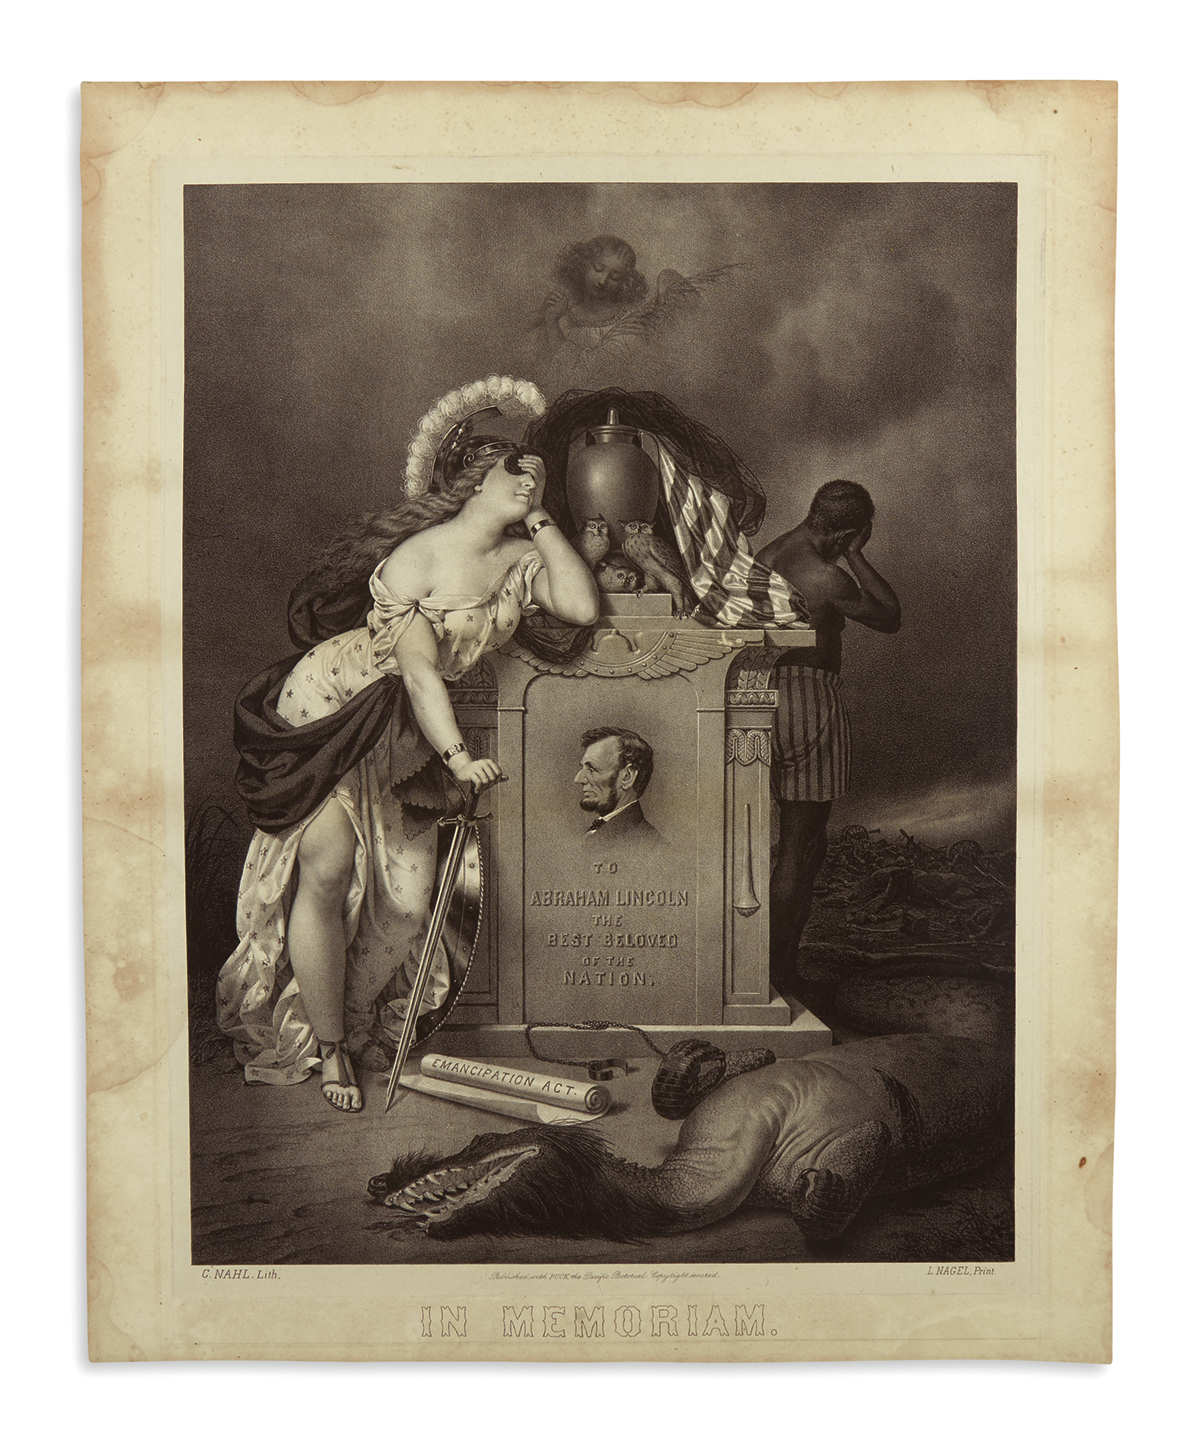 (PRINTS--MEMORIAL)-Nahl-C;-lithographer-To-Abraham-Lincoln-t